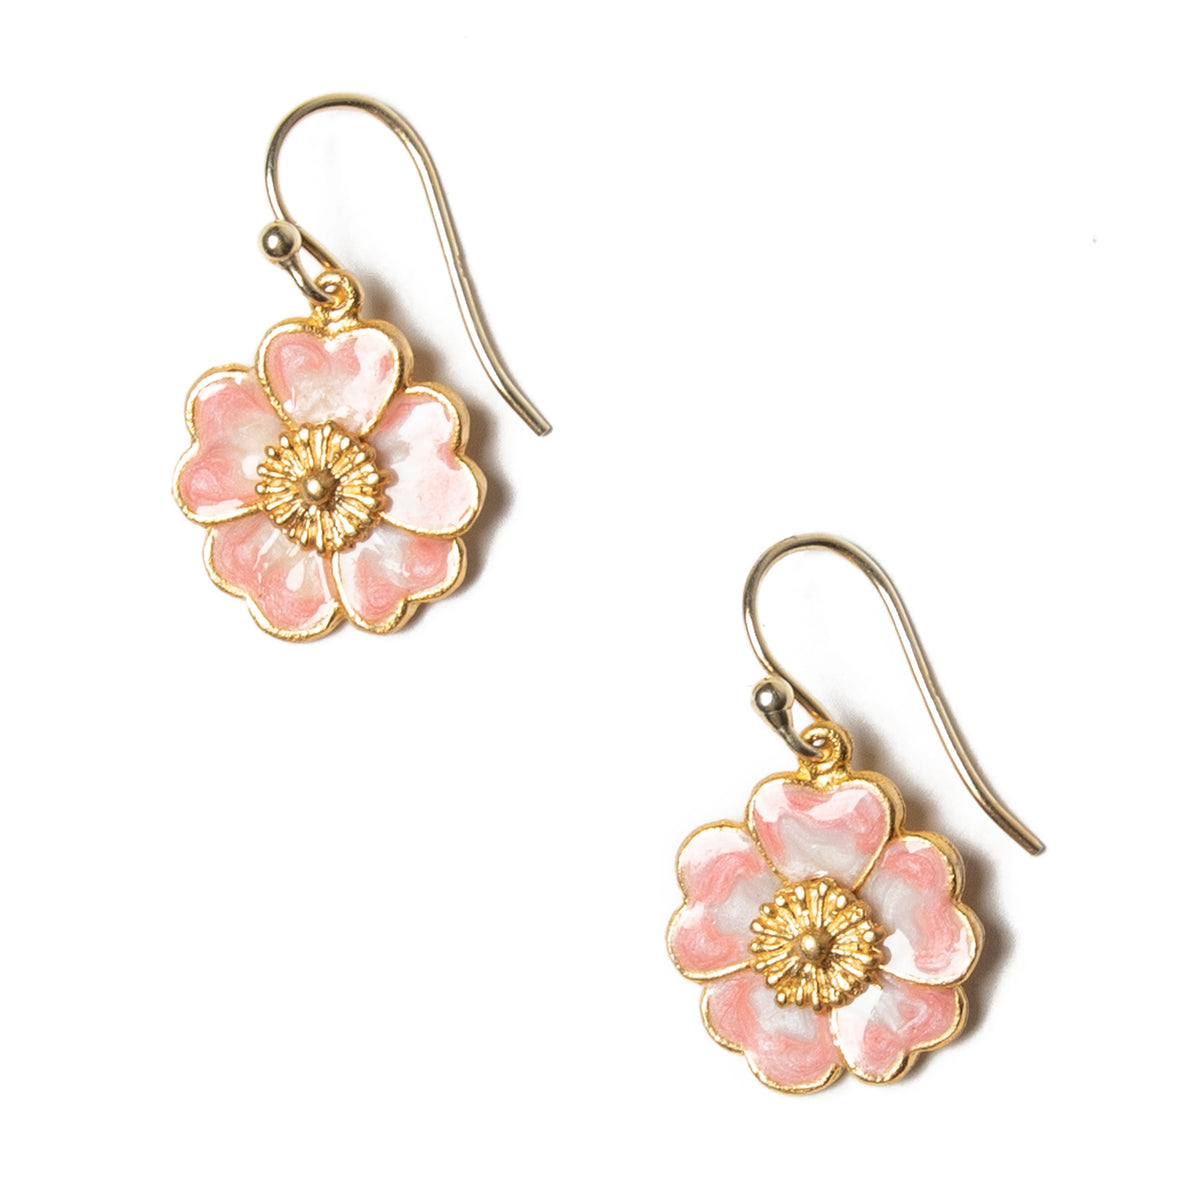 Manet Blossom Earrings | Getty Store